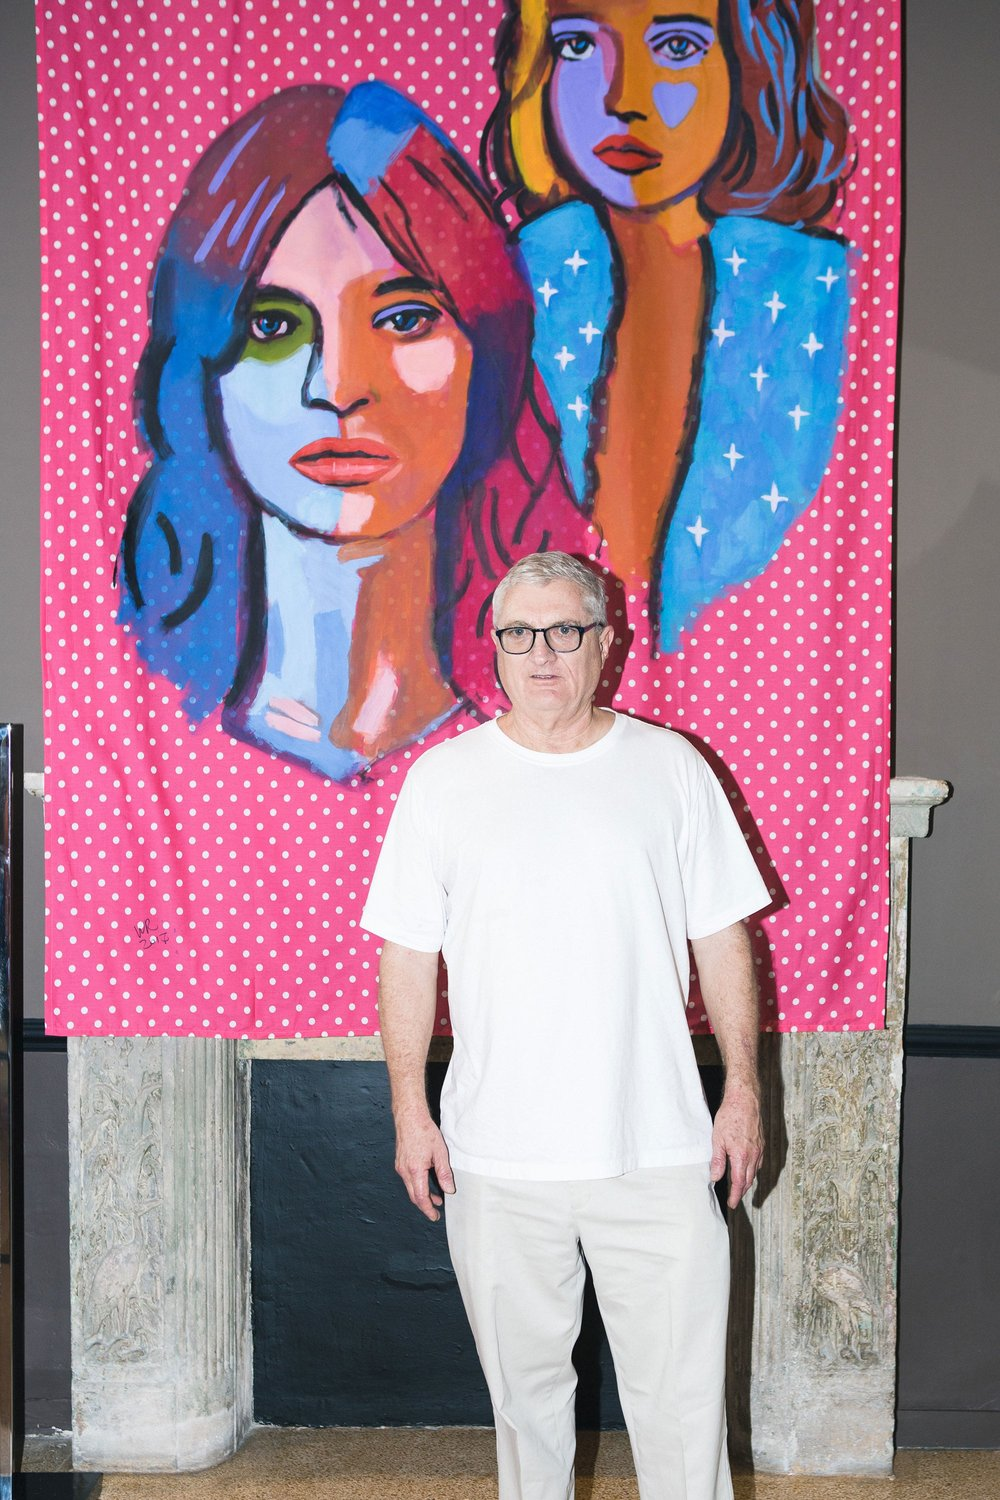 Walter Robinson next to his artwork as Sies Marjan, The Webster, and RxArt host an event for the launch of the illustration book: Between the Lines, 2017. Photo source: British Vogue.